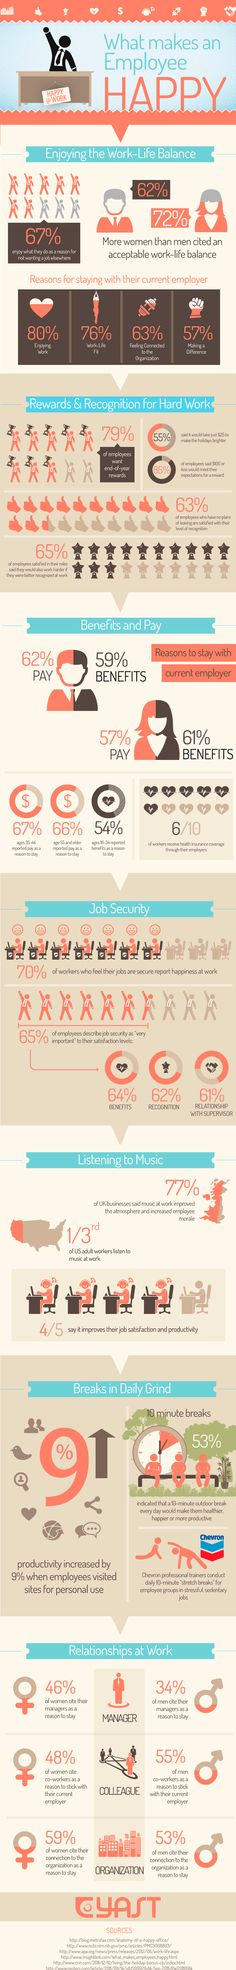 What Makes Us Happy at Work? [Infographic]